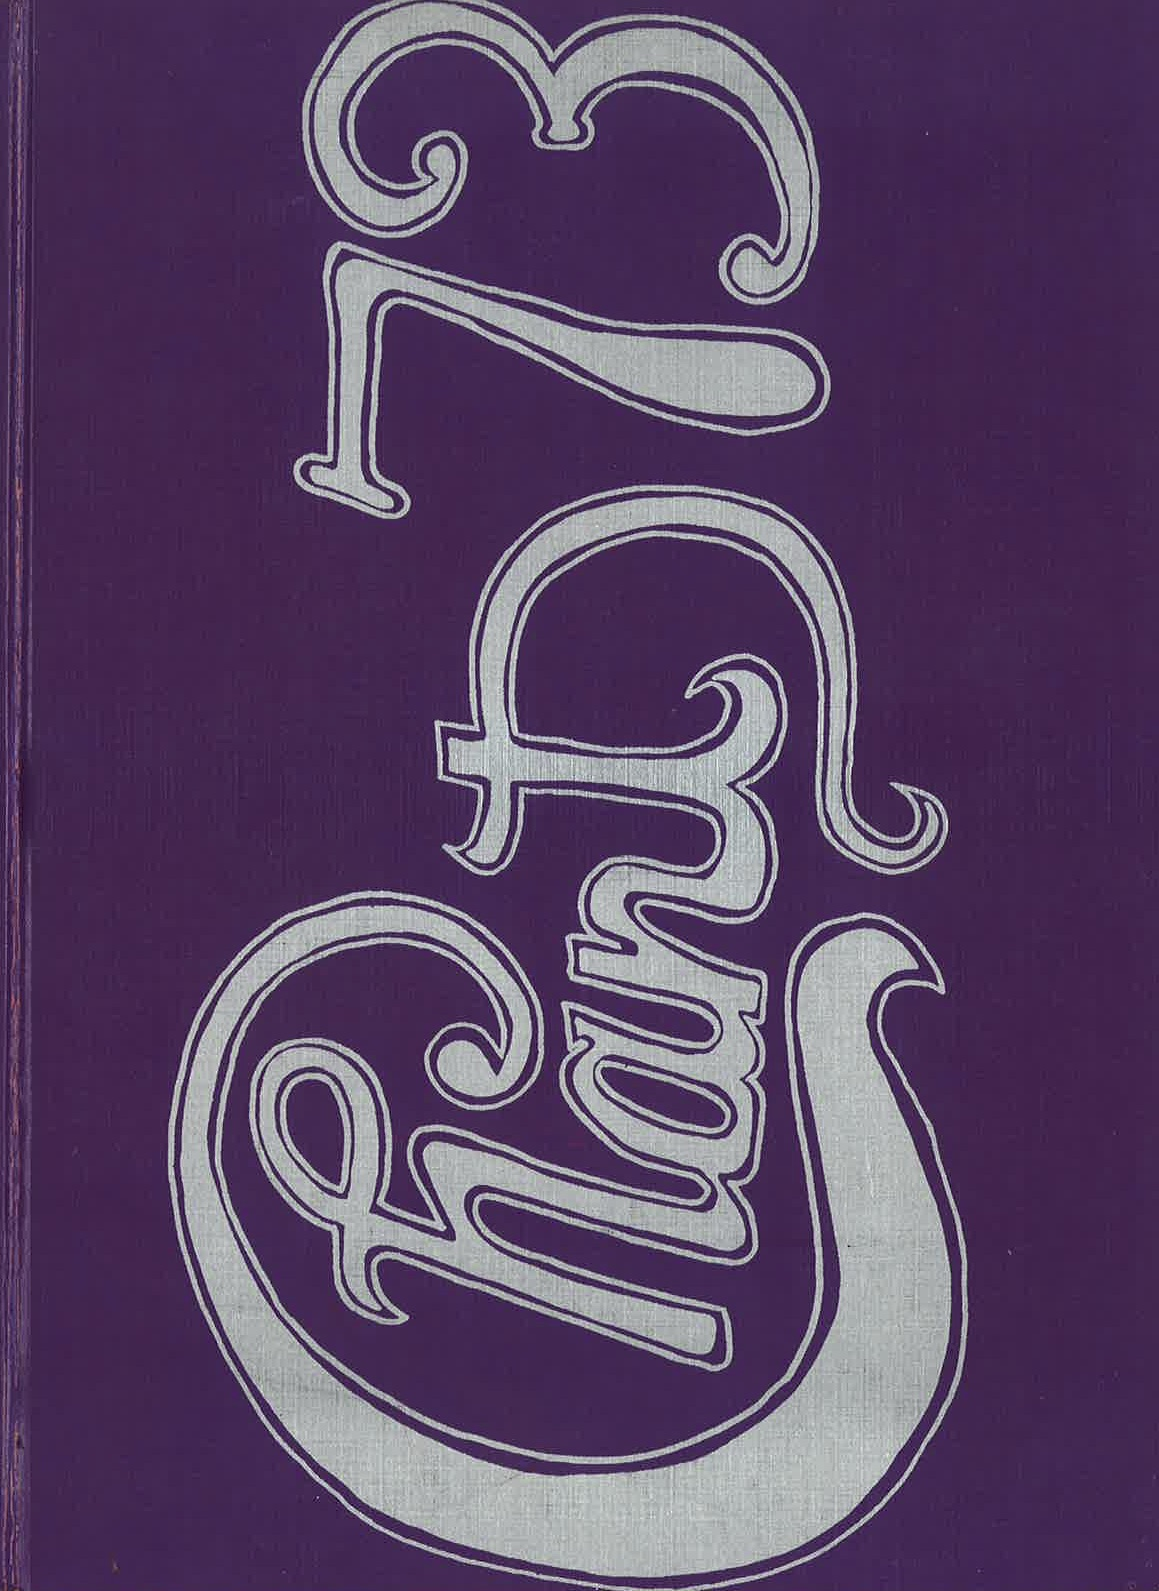 1973_Yearbook_Cover.jpg